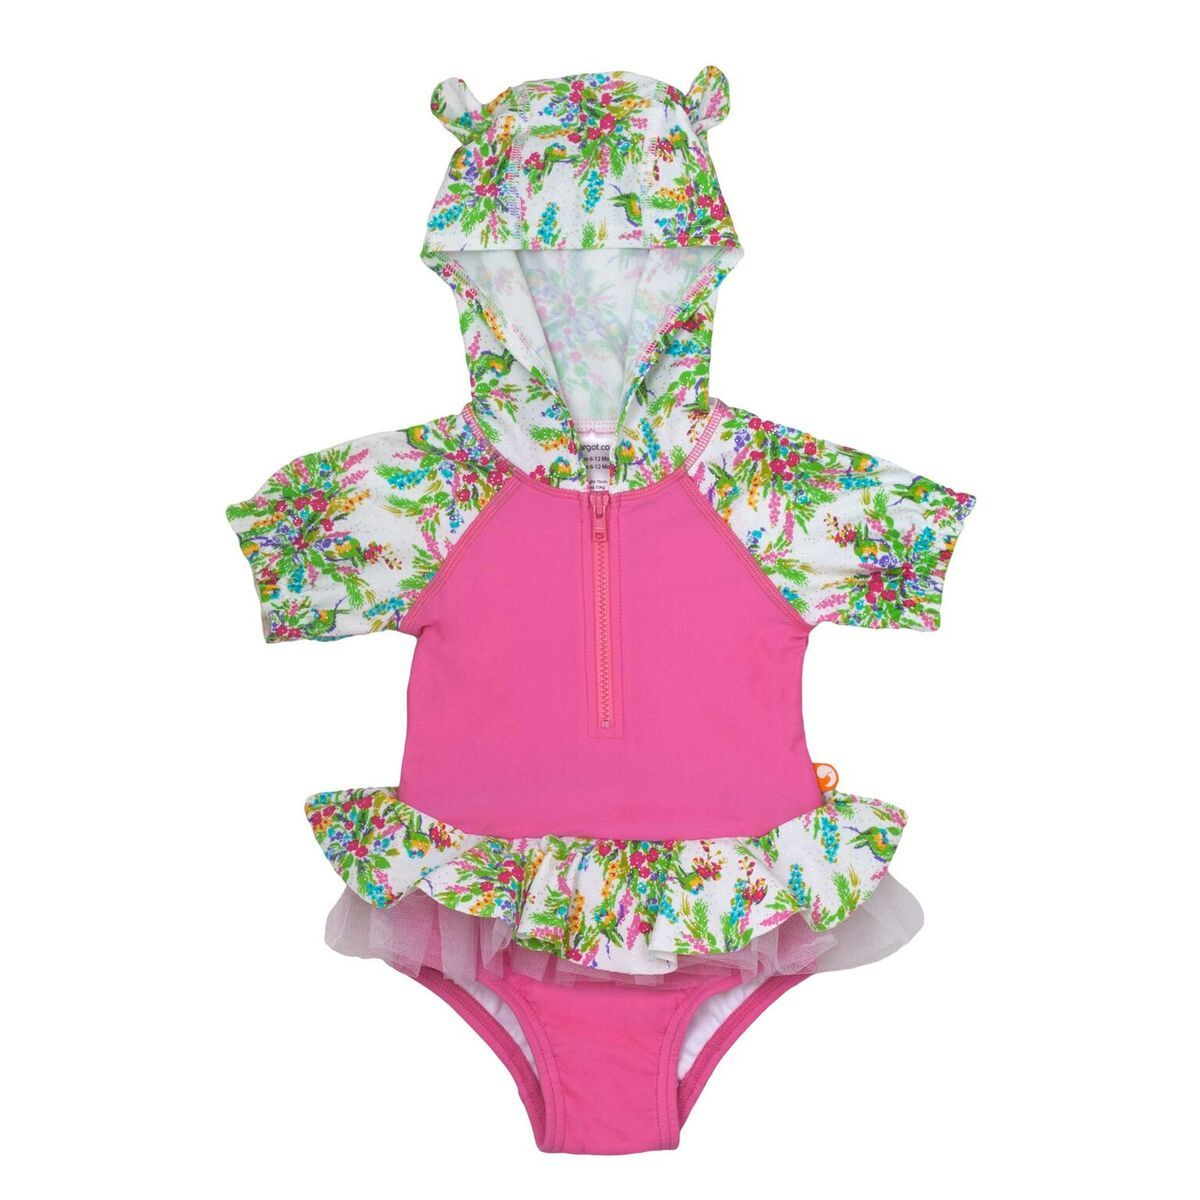 Escargot Springtime Baby Hooded One Piece